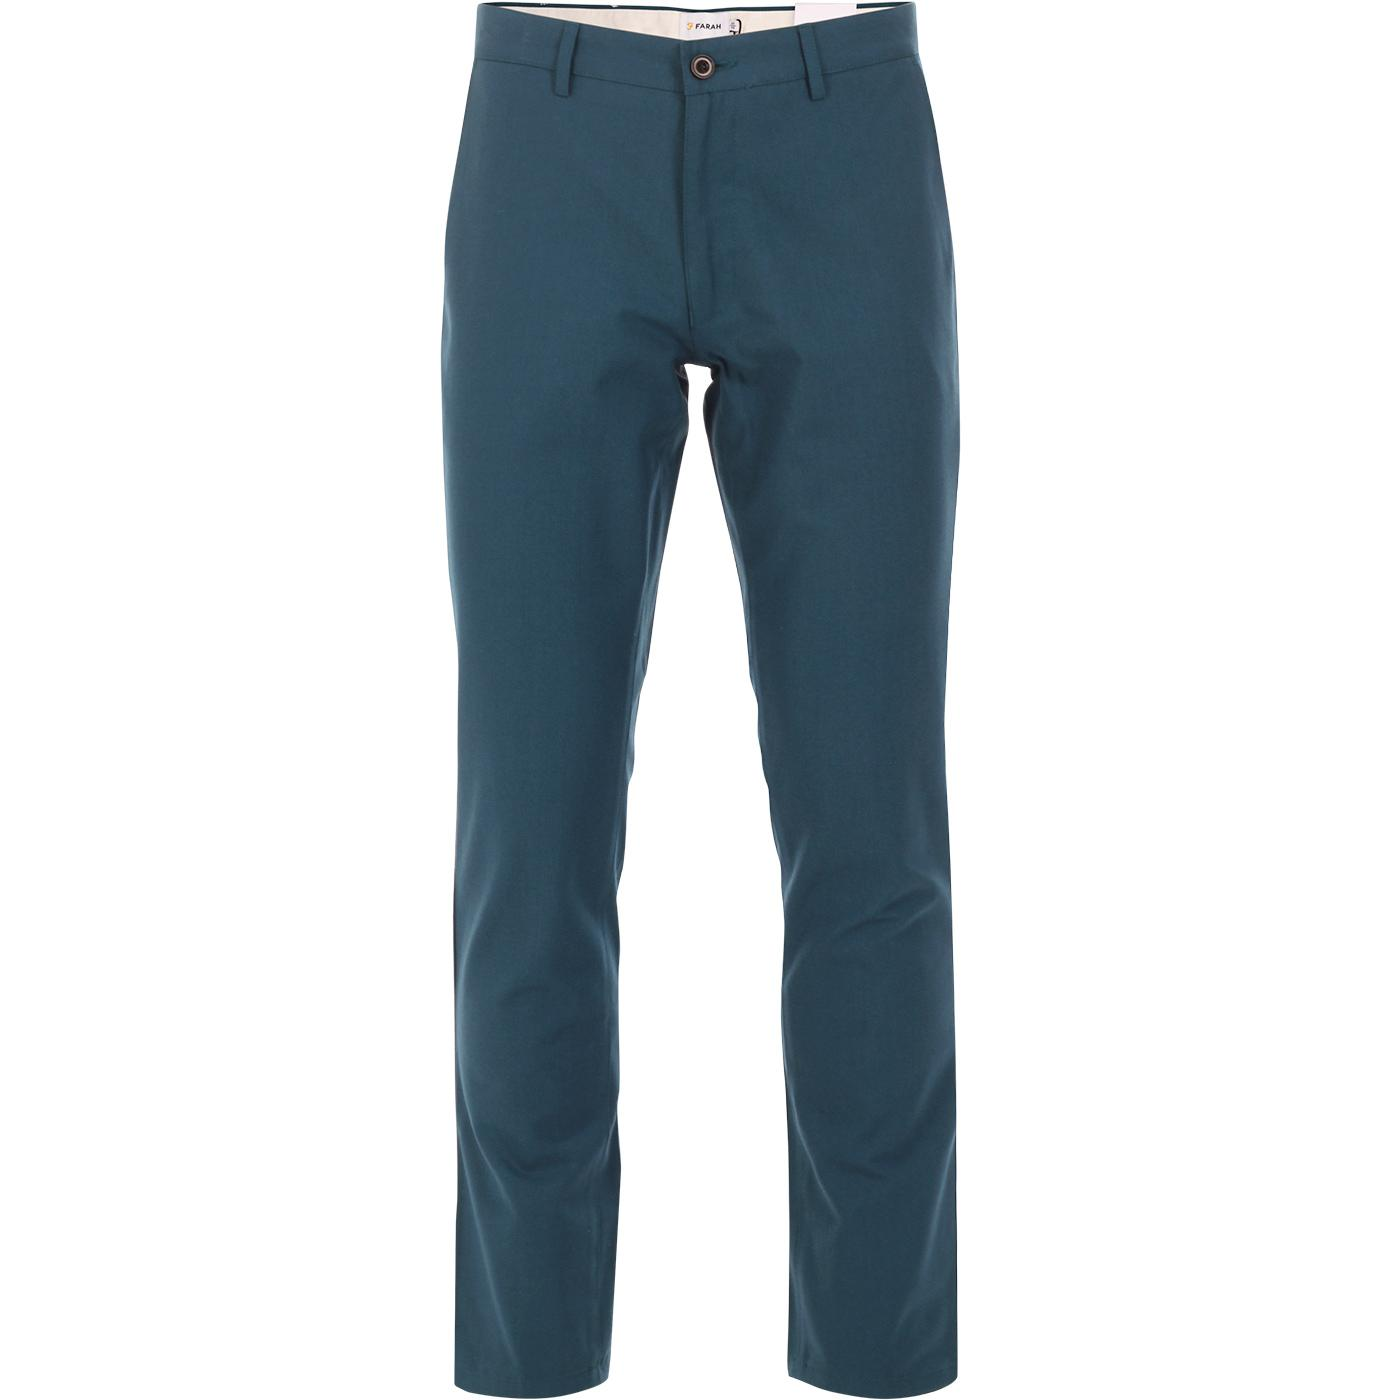 Elm FARAH Retro Mod Slim Hopsack Trousers (Teal)